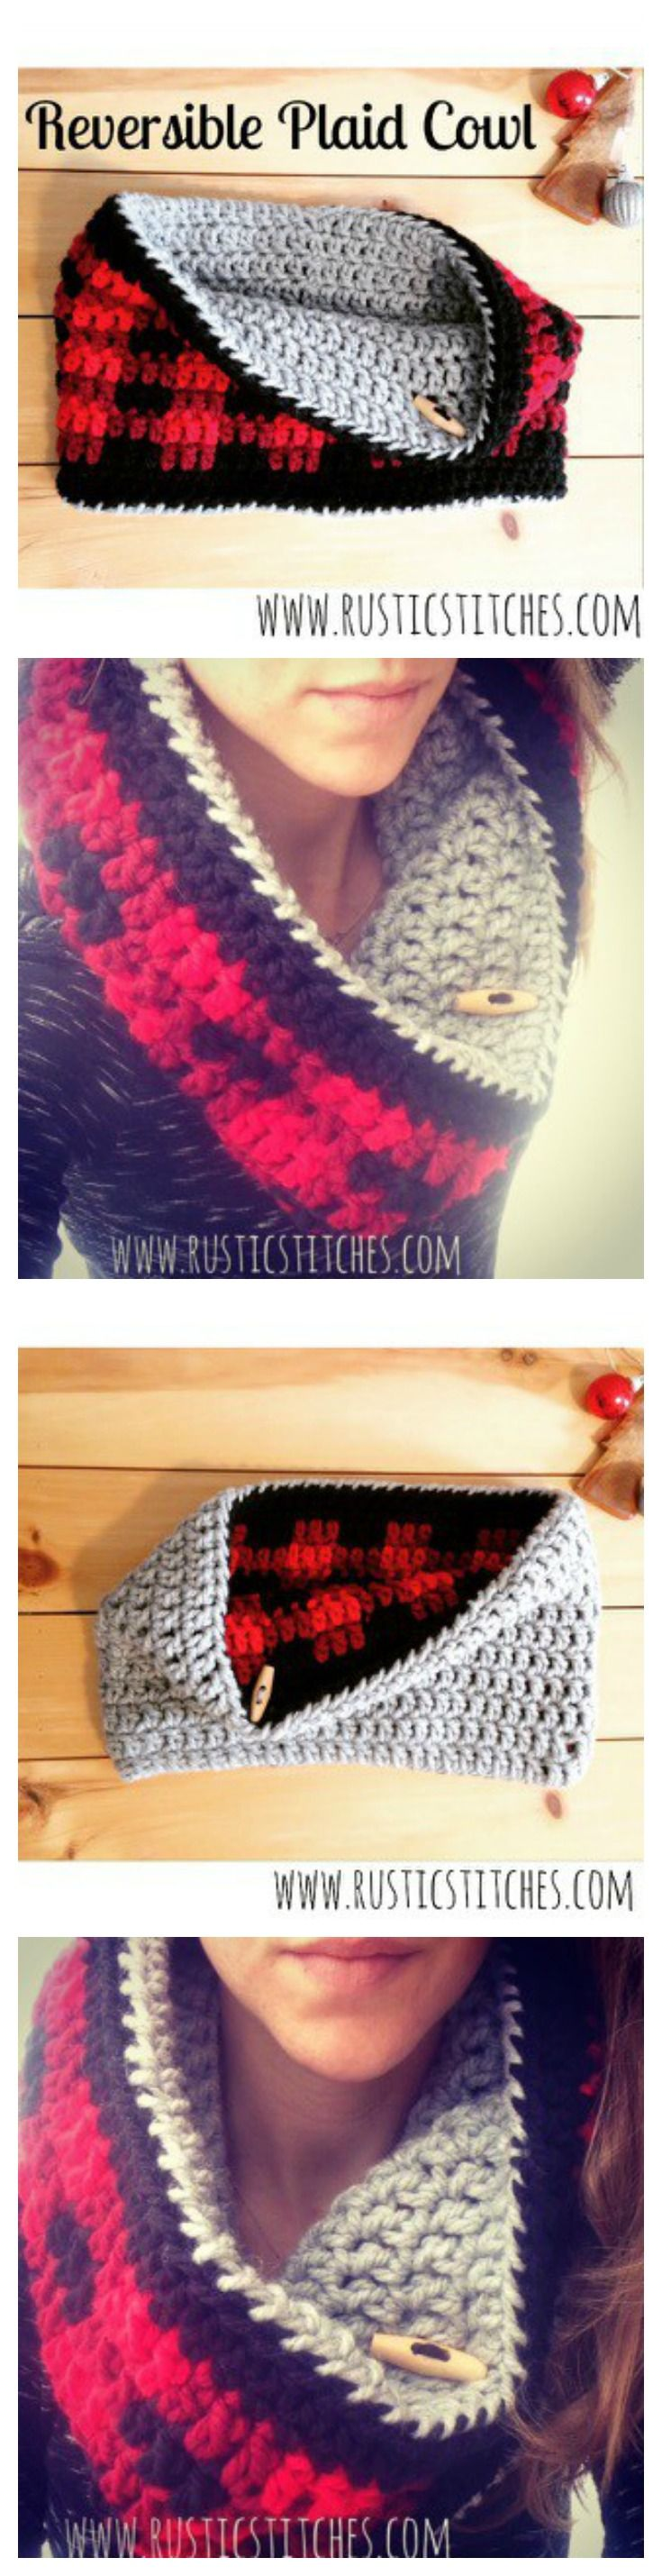 Best 25 crochet cowls ideas on pinterest crochet cowl patterns reversible plaid cowl free pattern from rusticstitches bankloansurffo Gallery